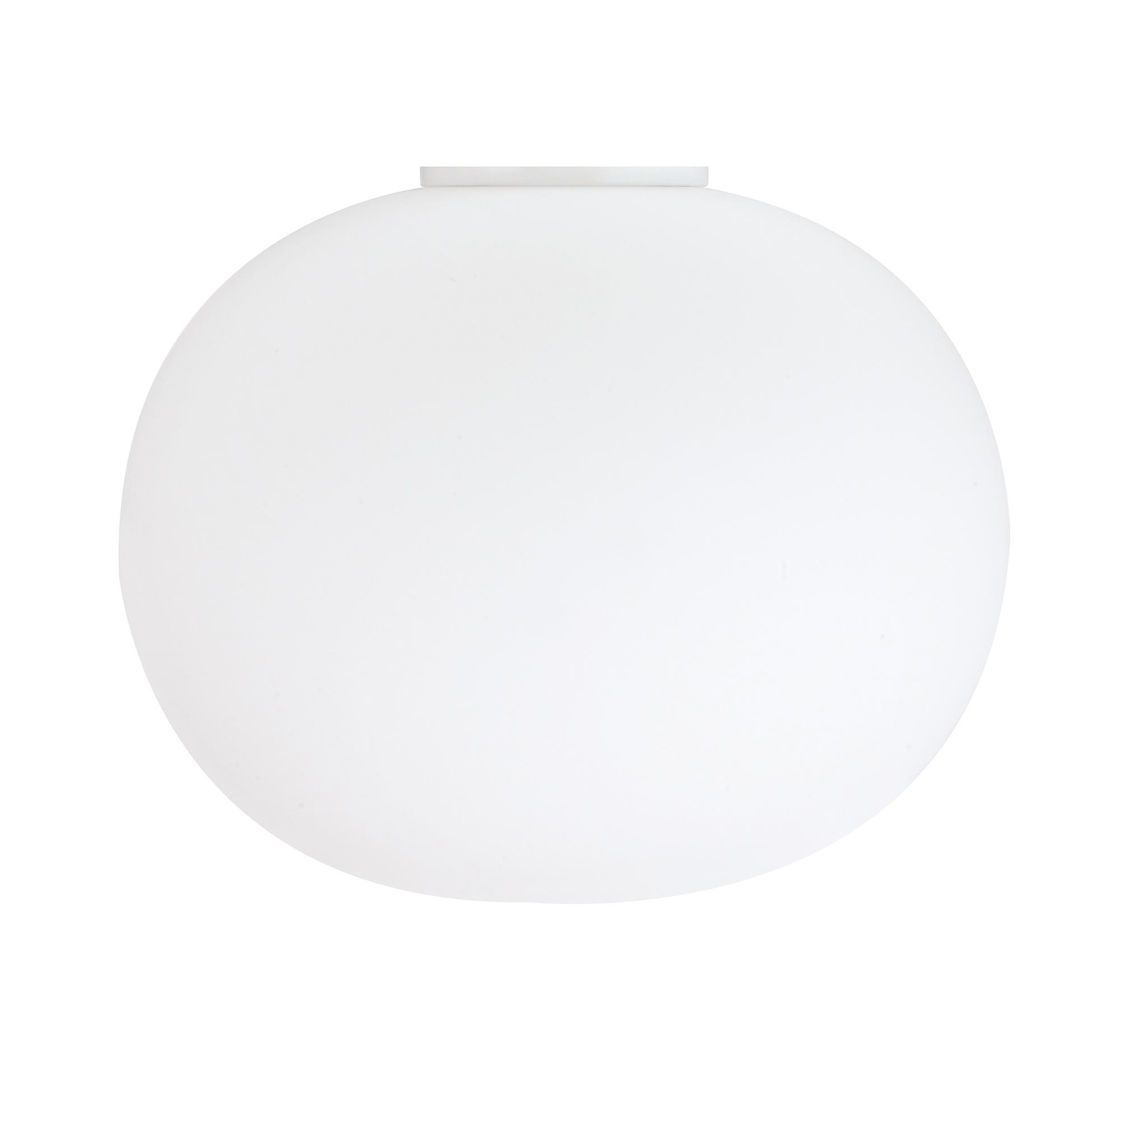 Glo ball c1 ceiling lamp flos ambientedirect glo ball c1 ceiling lamp mozeypictures Images